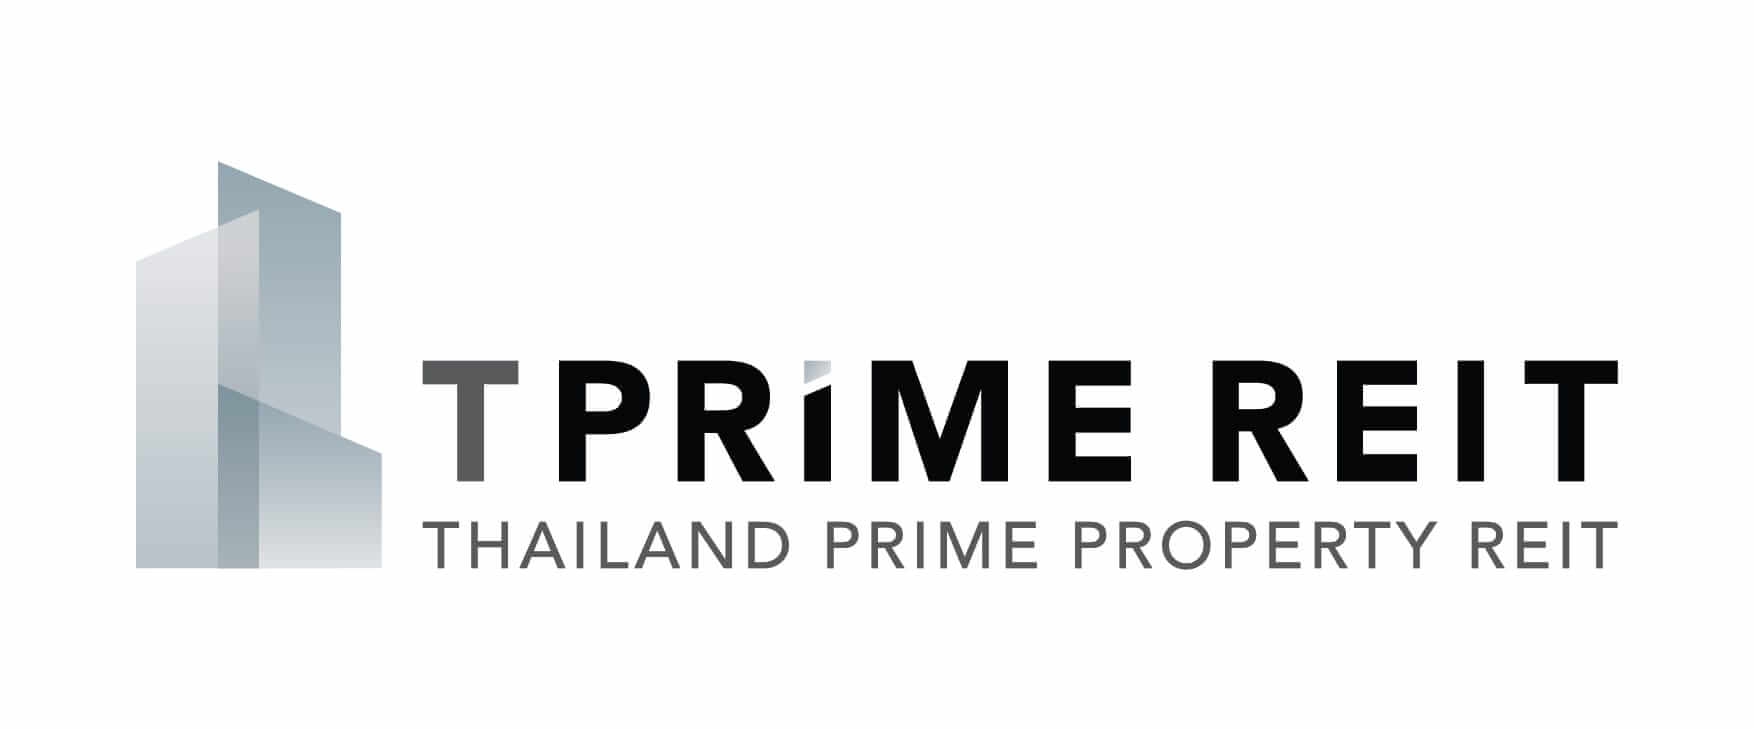 Thailand Prime Property Freehold and Leasehold Real Estate Investment Trust